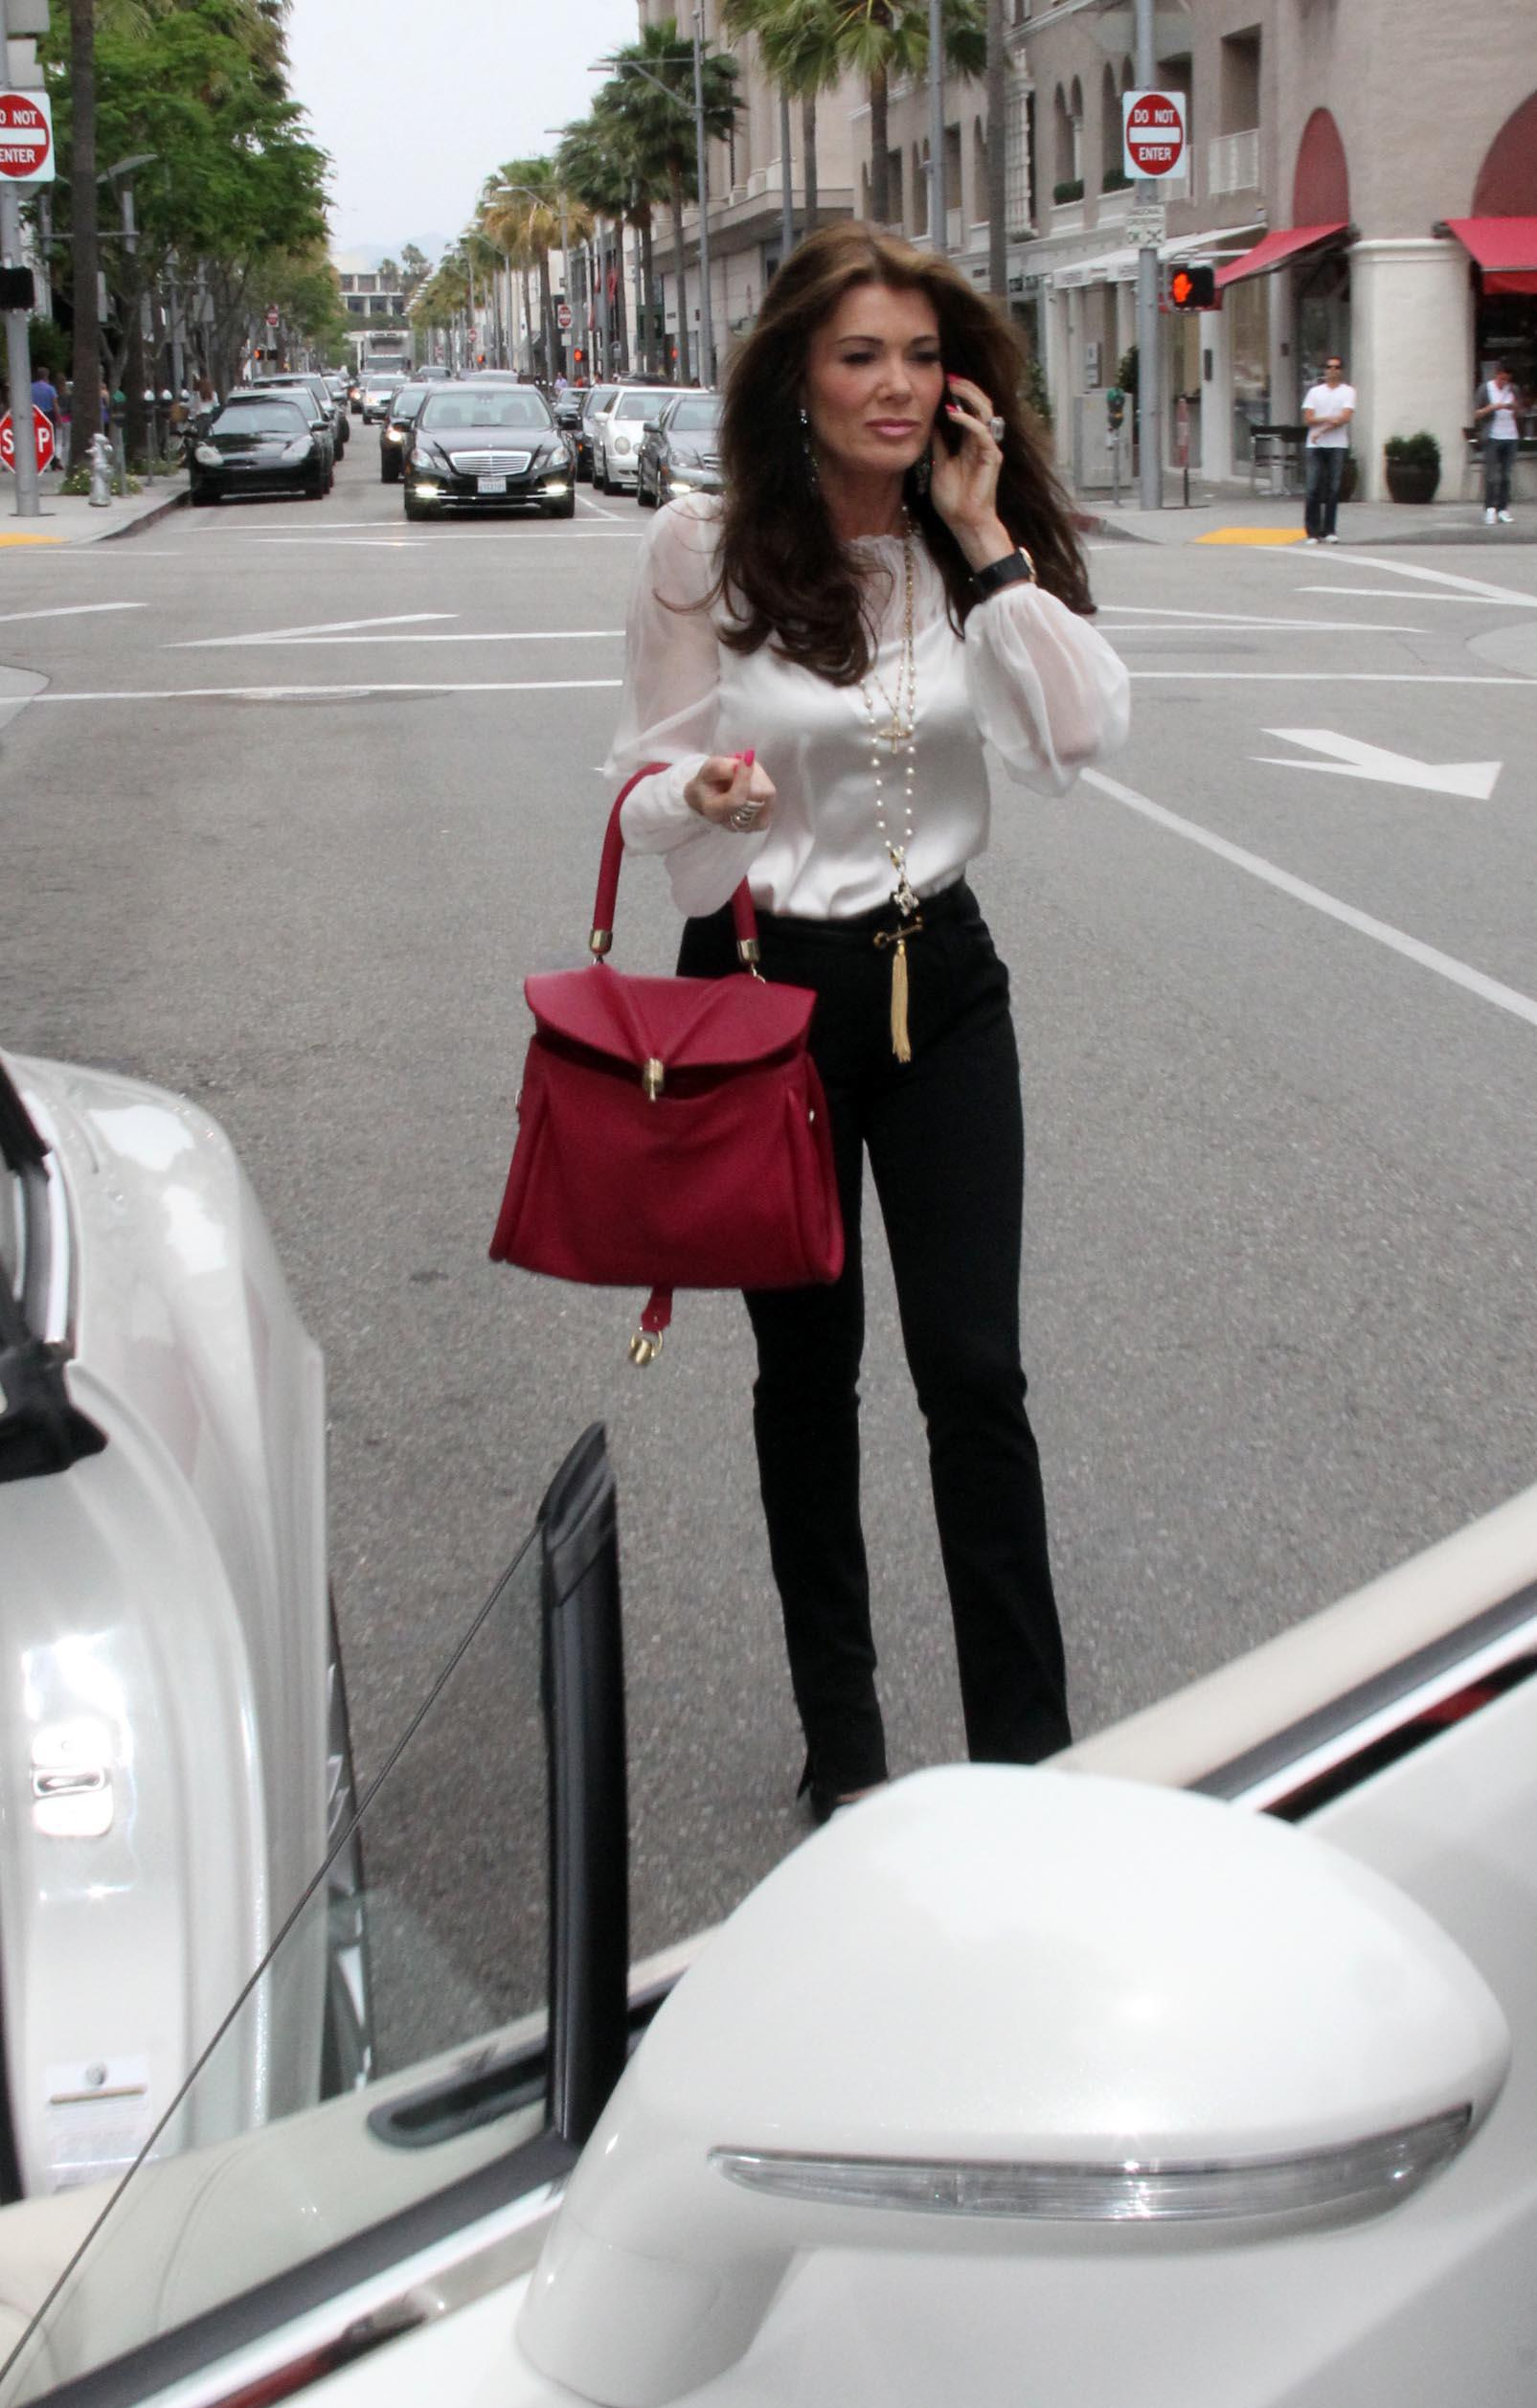 Lisa Vanderpump Spotted with daughter Pandora while shopping in Beverly Hills (May 9, 2013)